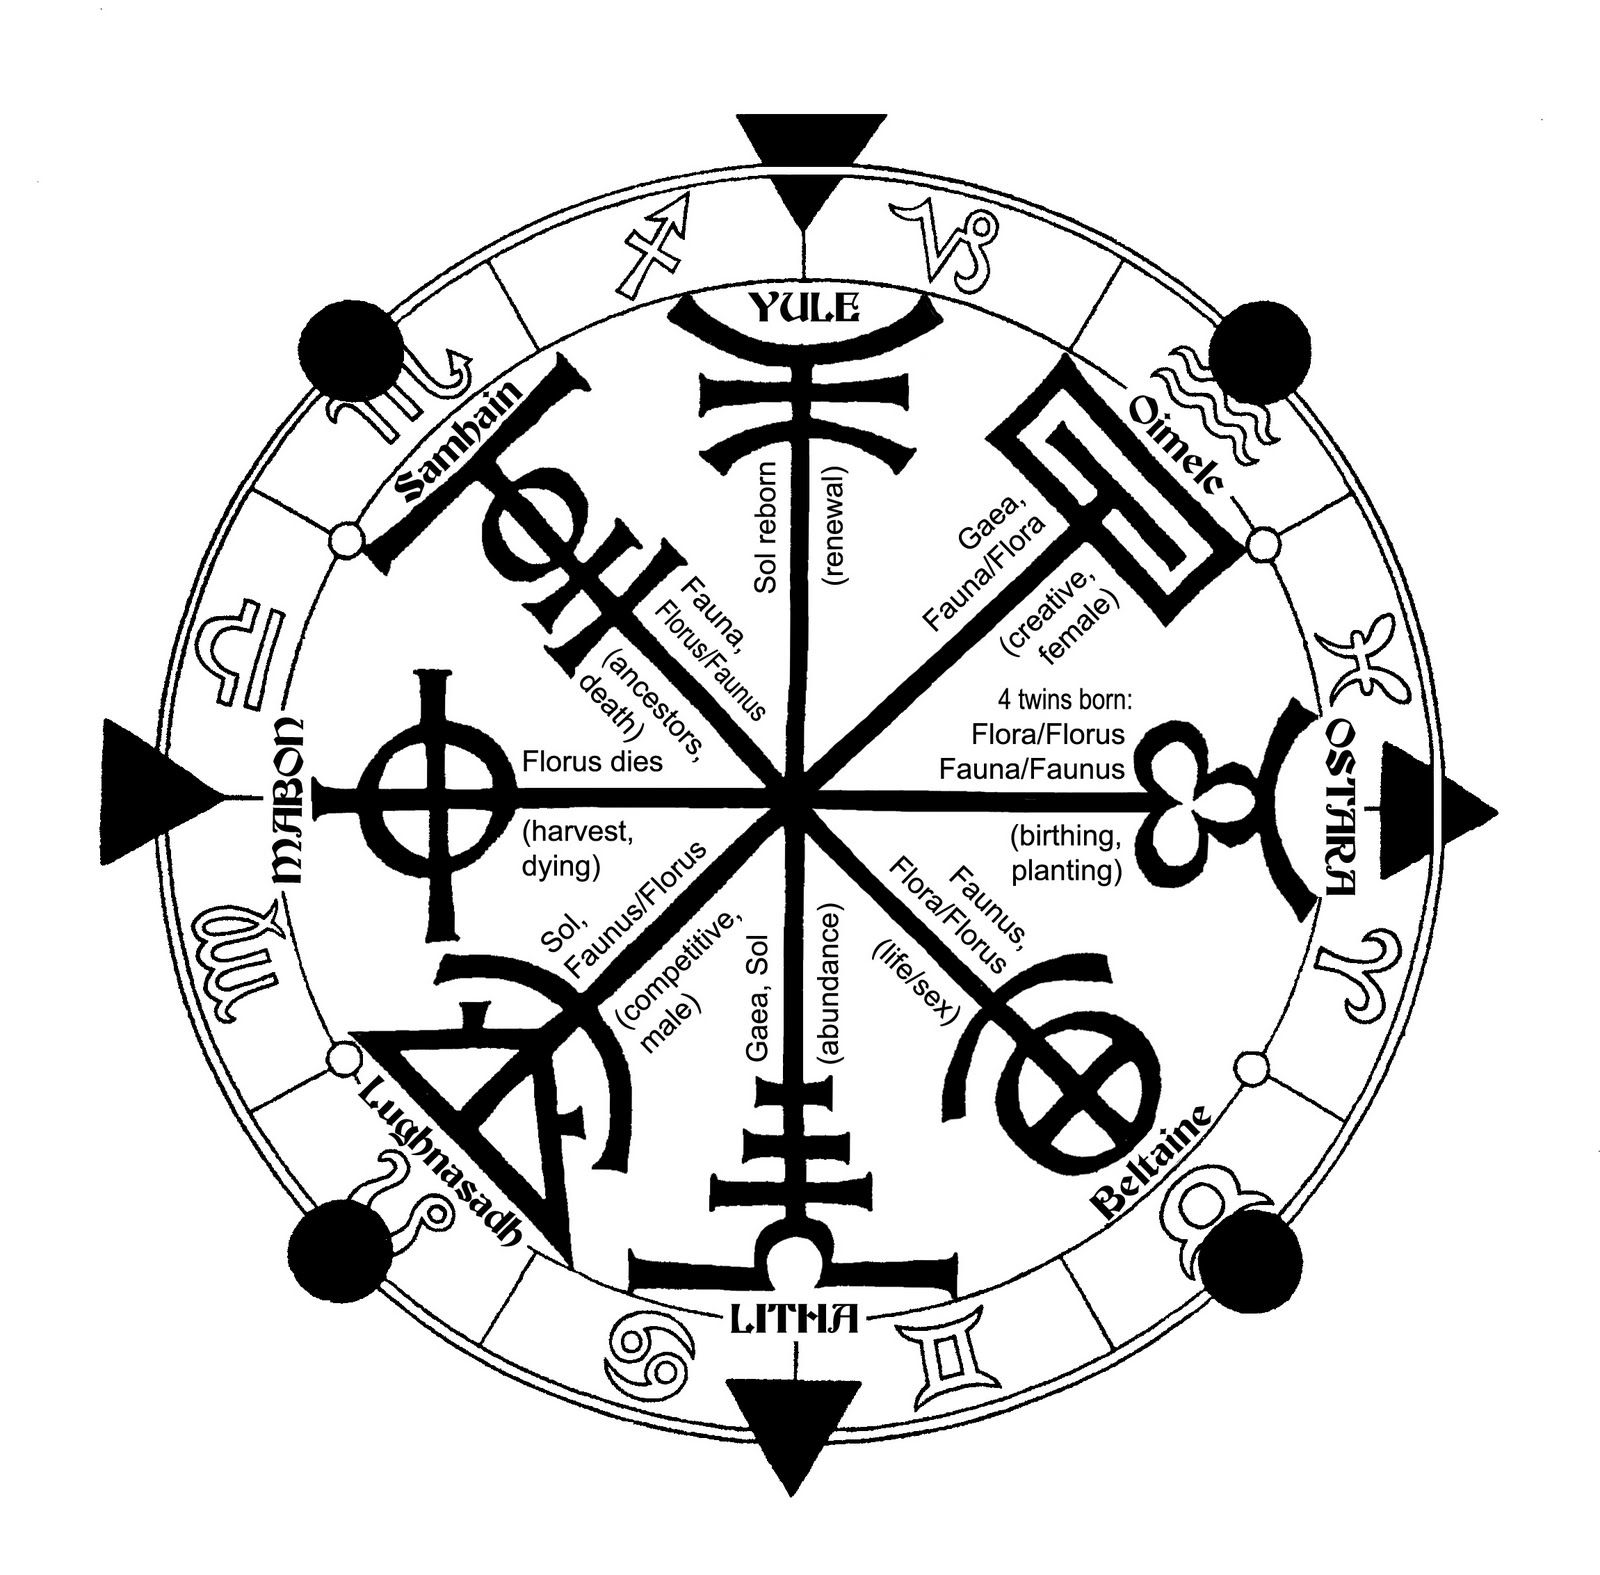 The Annual Cycle of the seasonal celebrations is variously referred to as the Sacred Round, the Cycle of Sabbats, or the Wheel of the Year. Wheel+of+Year+by+OZ.jpg (1600×1575)